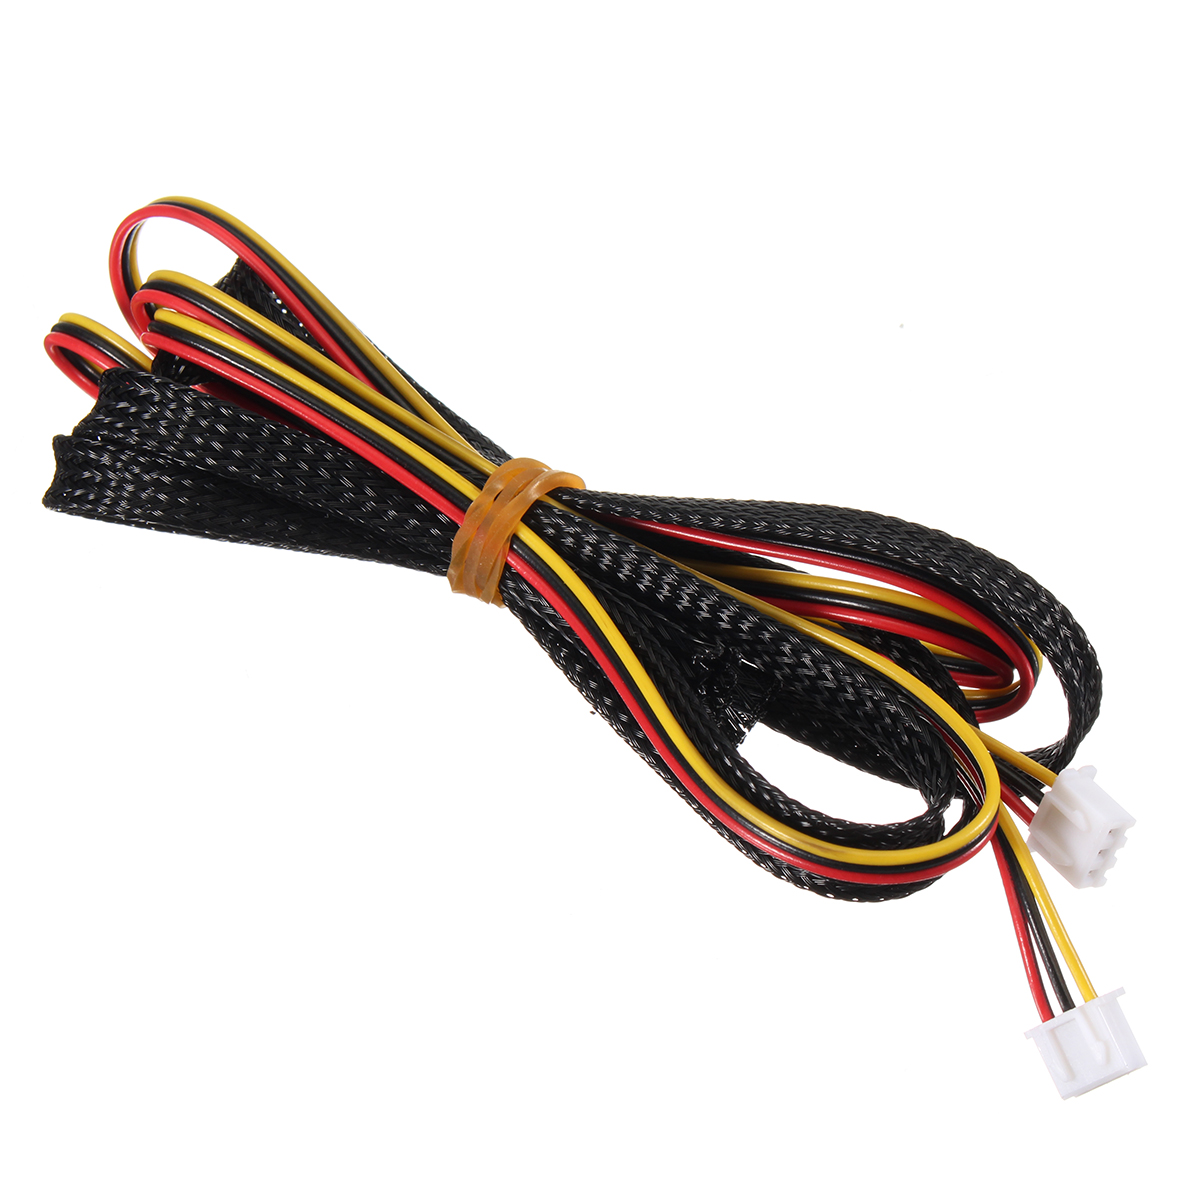 3D Printer Part 1.75mm Filament Monitoring Alarm Protection Kit With Motor Wire For CR-10S